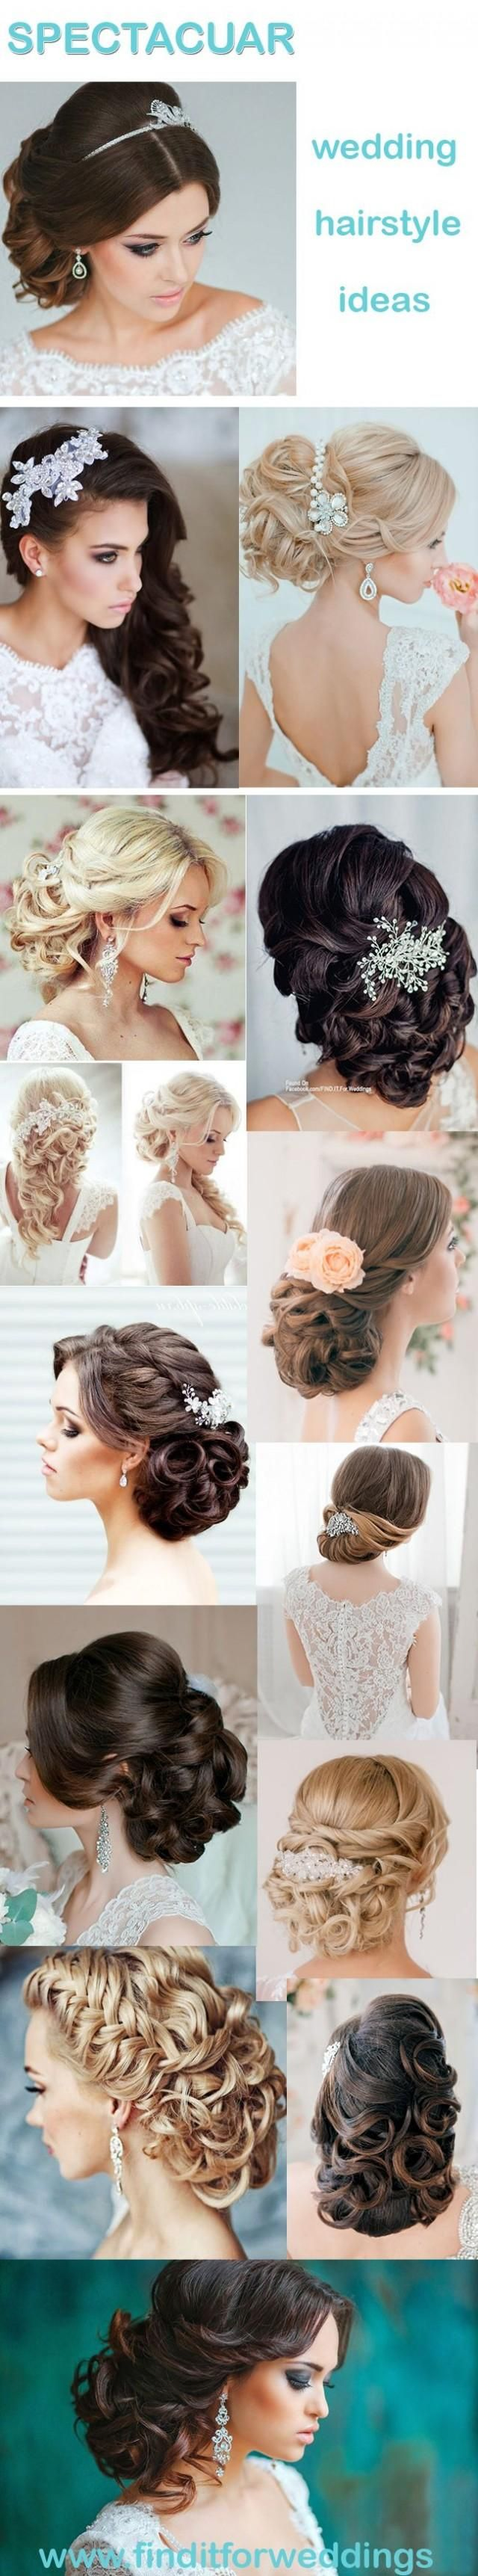 Outstanding 1000 Ideas About Hairstyle Images On Pinterest Hairstyles Short Hairstyles Gunalazisus